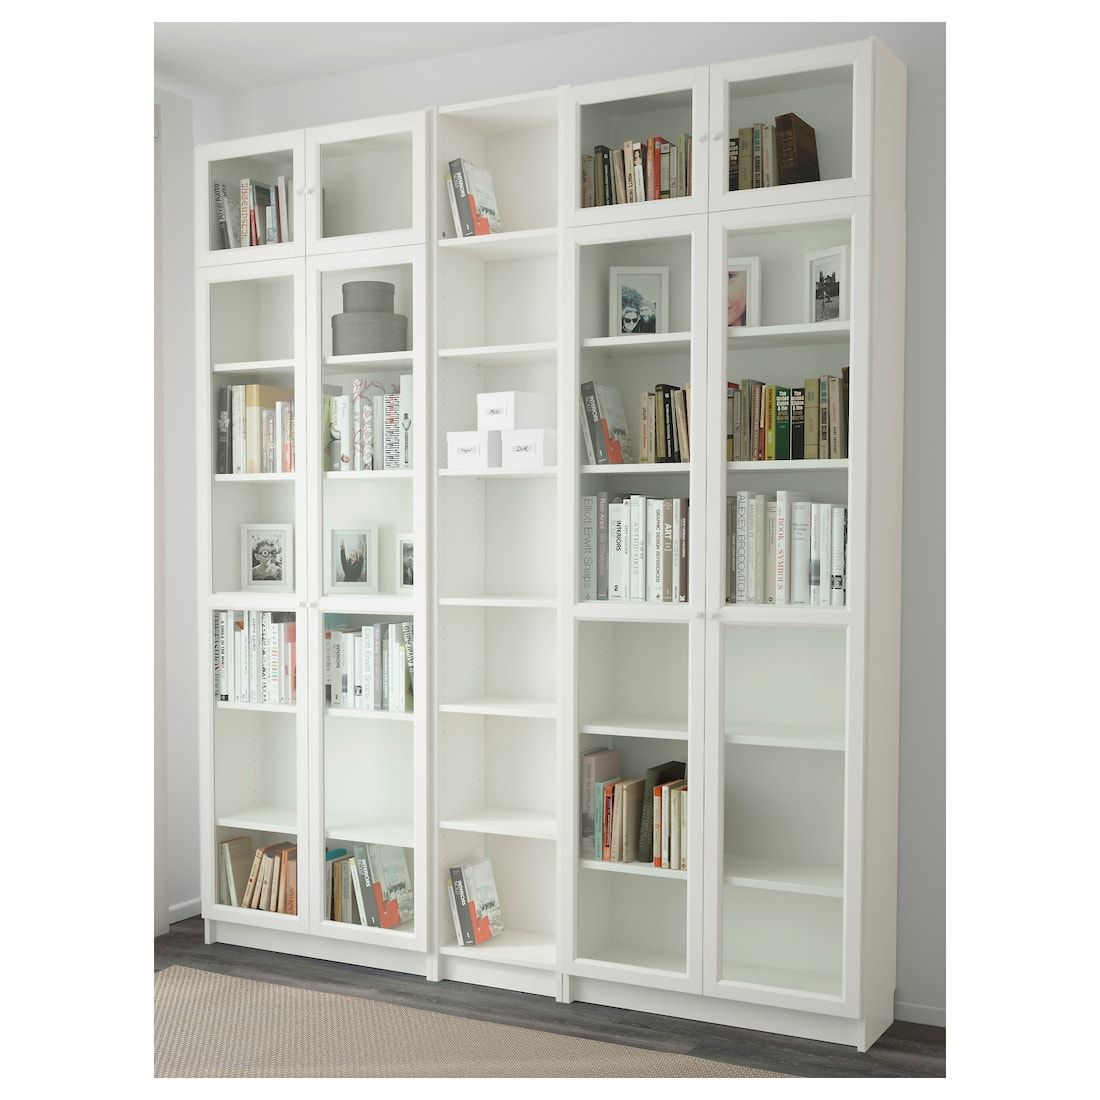 Pin By Renee Quintanar On House Inspiration In 2020 Ikea Bookcase Bookcase With Glass Doors Bookcase